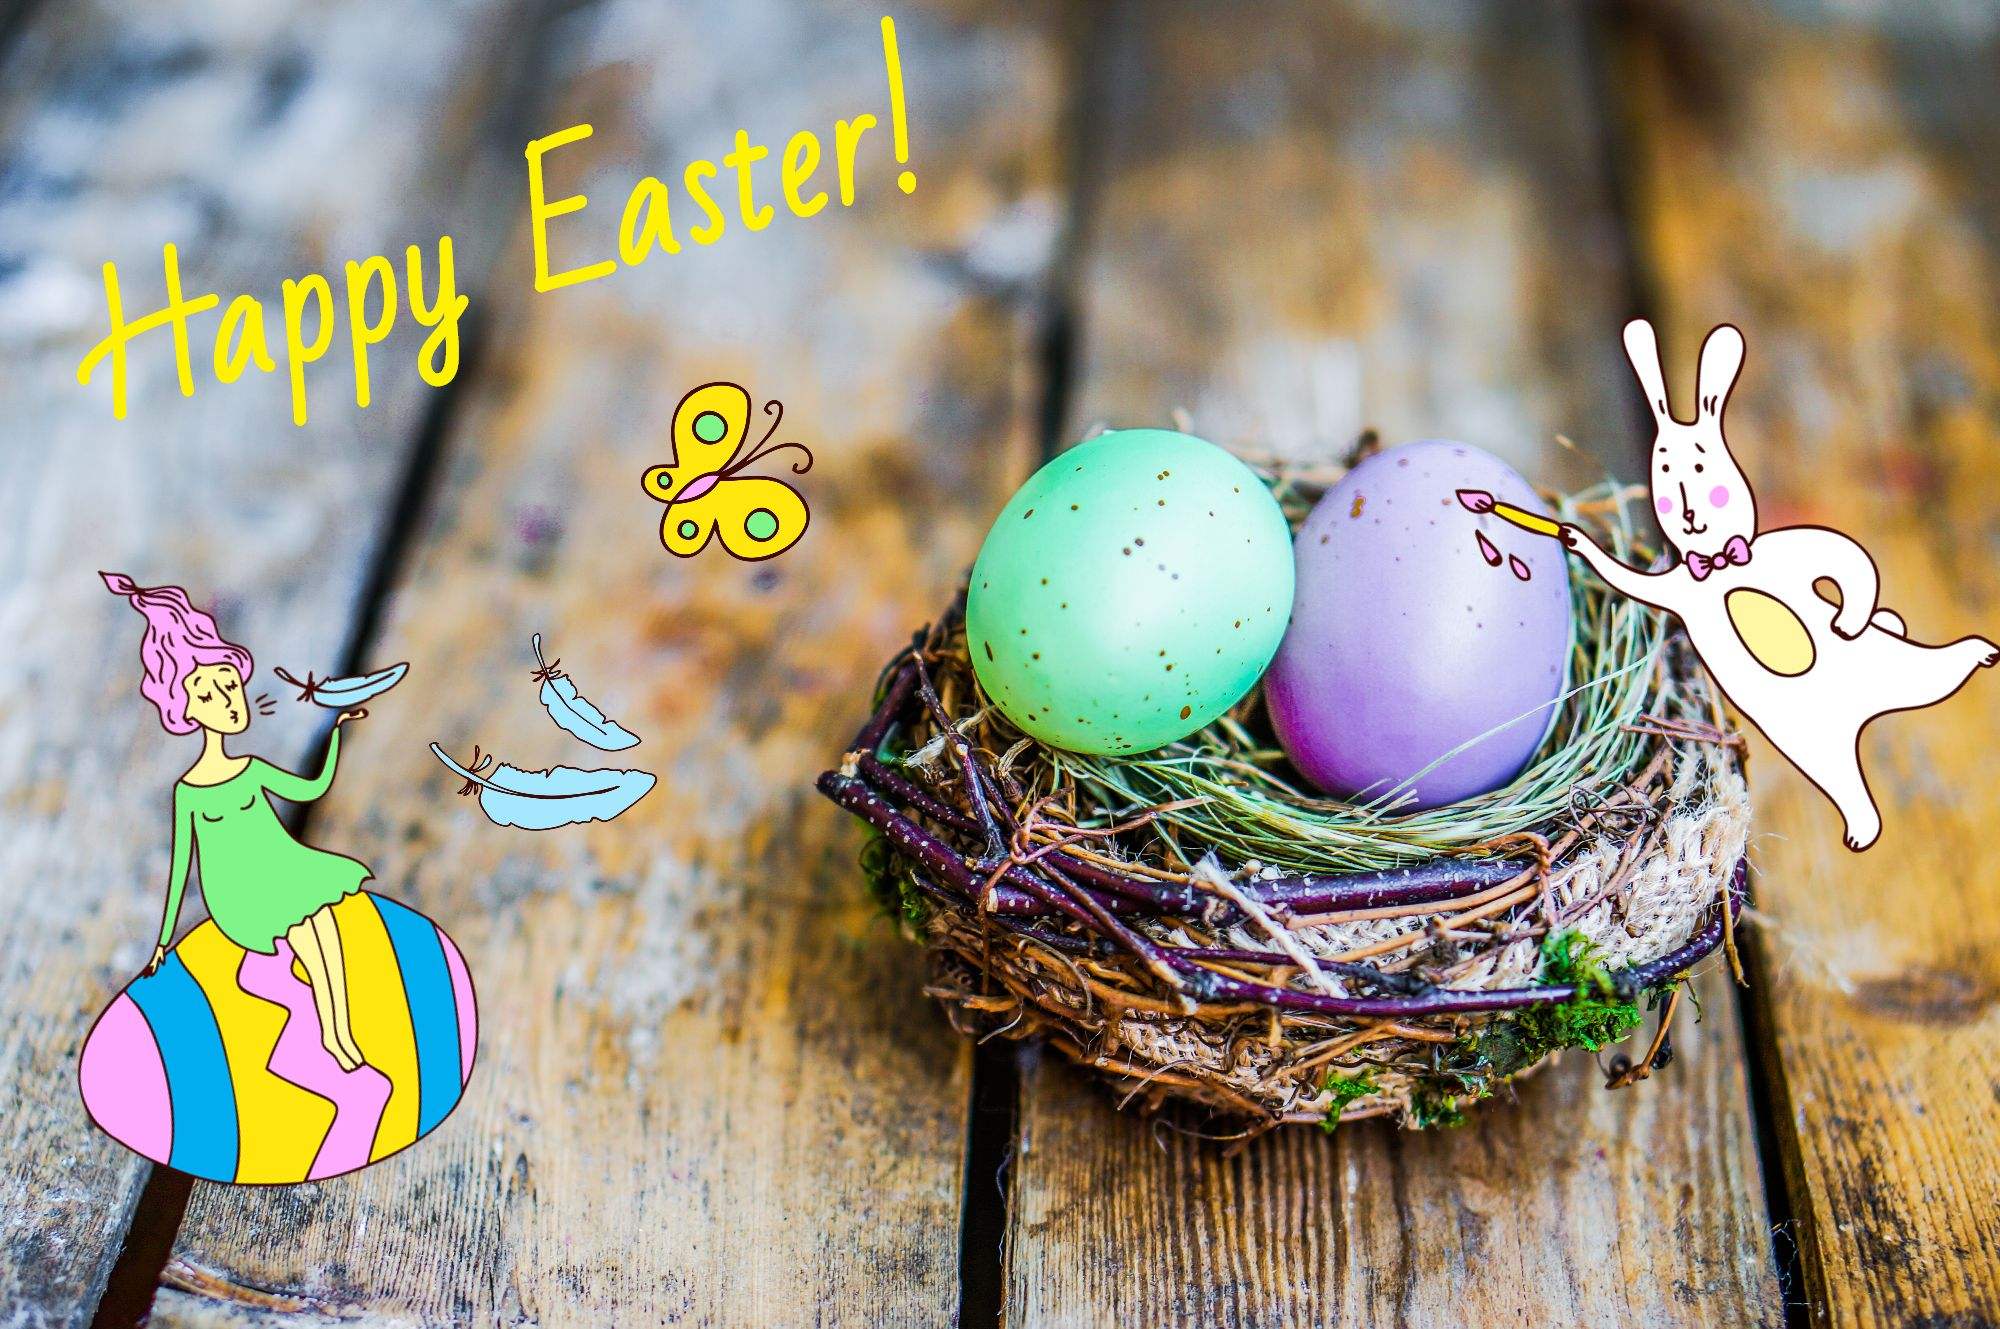 Easter photo card with funny stickers designed online with free photo editor